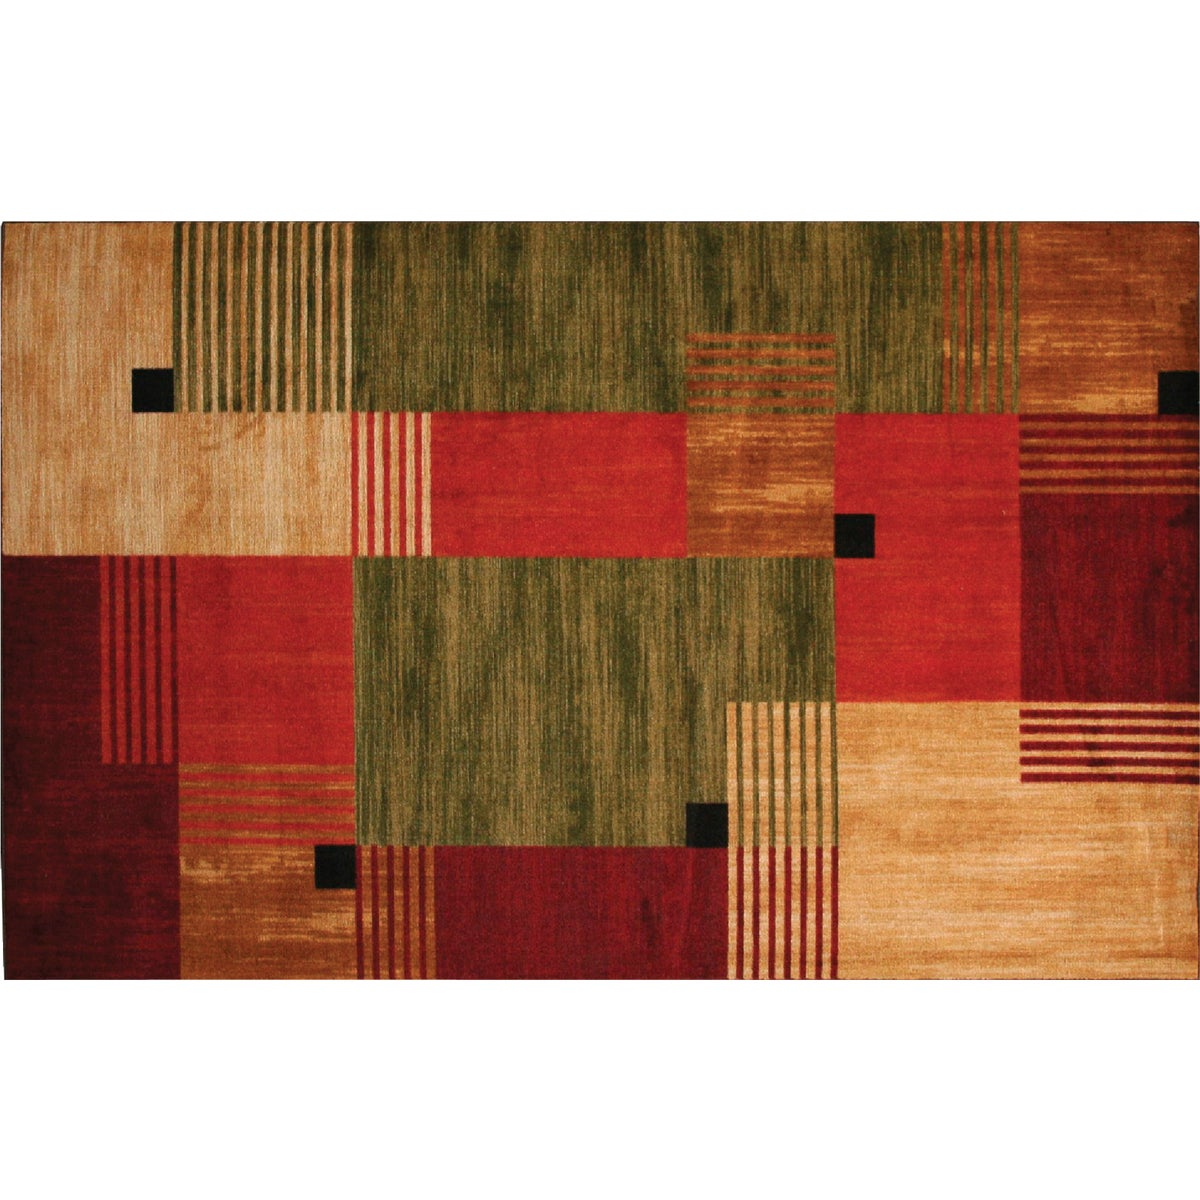 5X8 ALLIANCE PRINT RUG - 10276-416-60096 by Mohawk Home Products